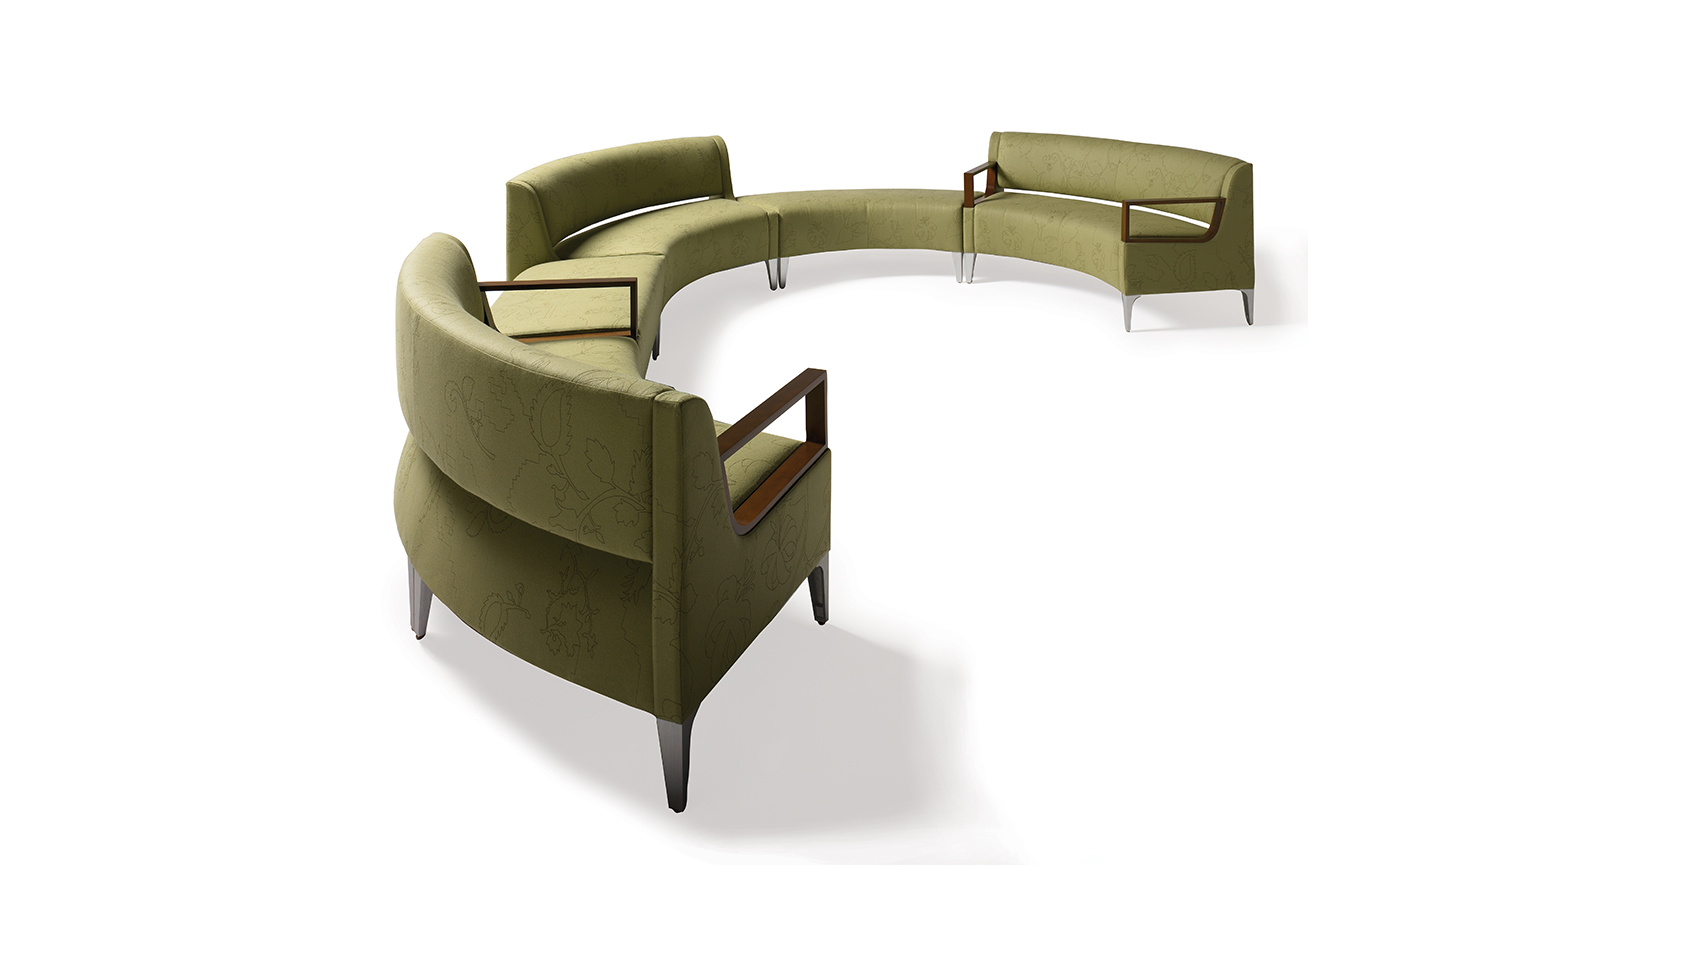 carolina shopping north directory furniture famous featuring us brand name about tips